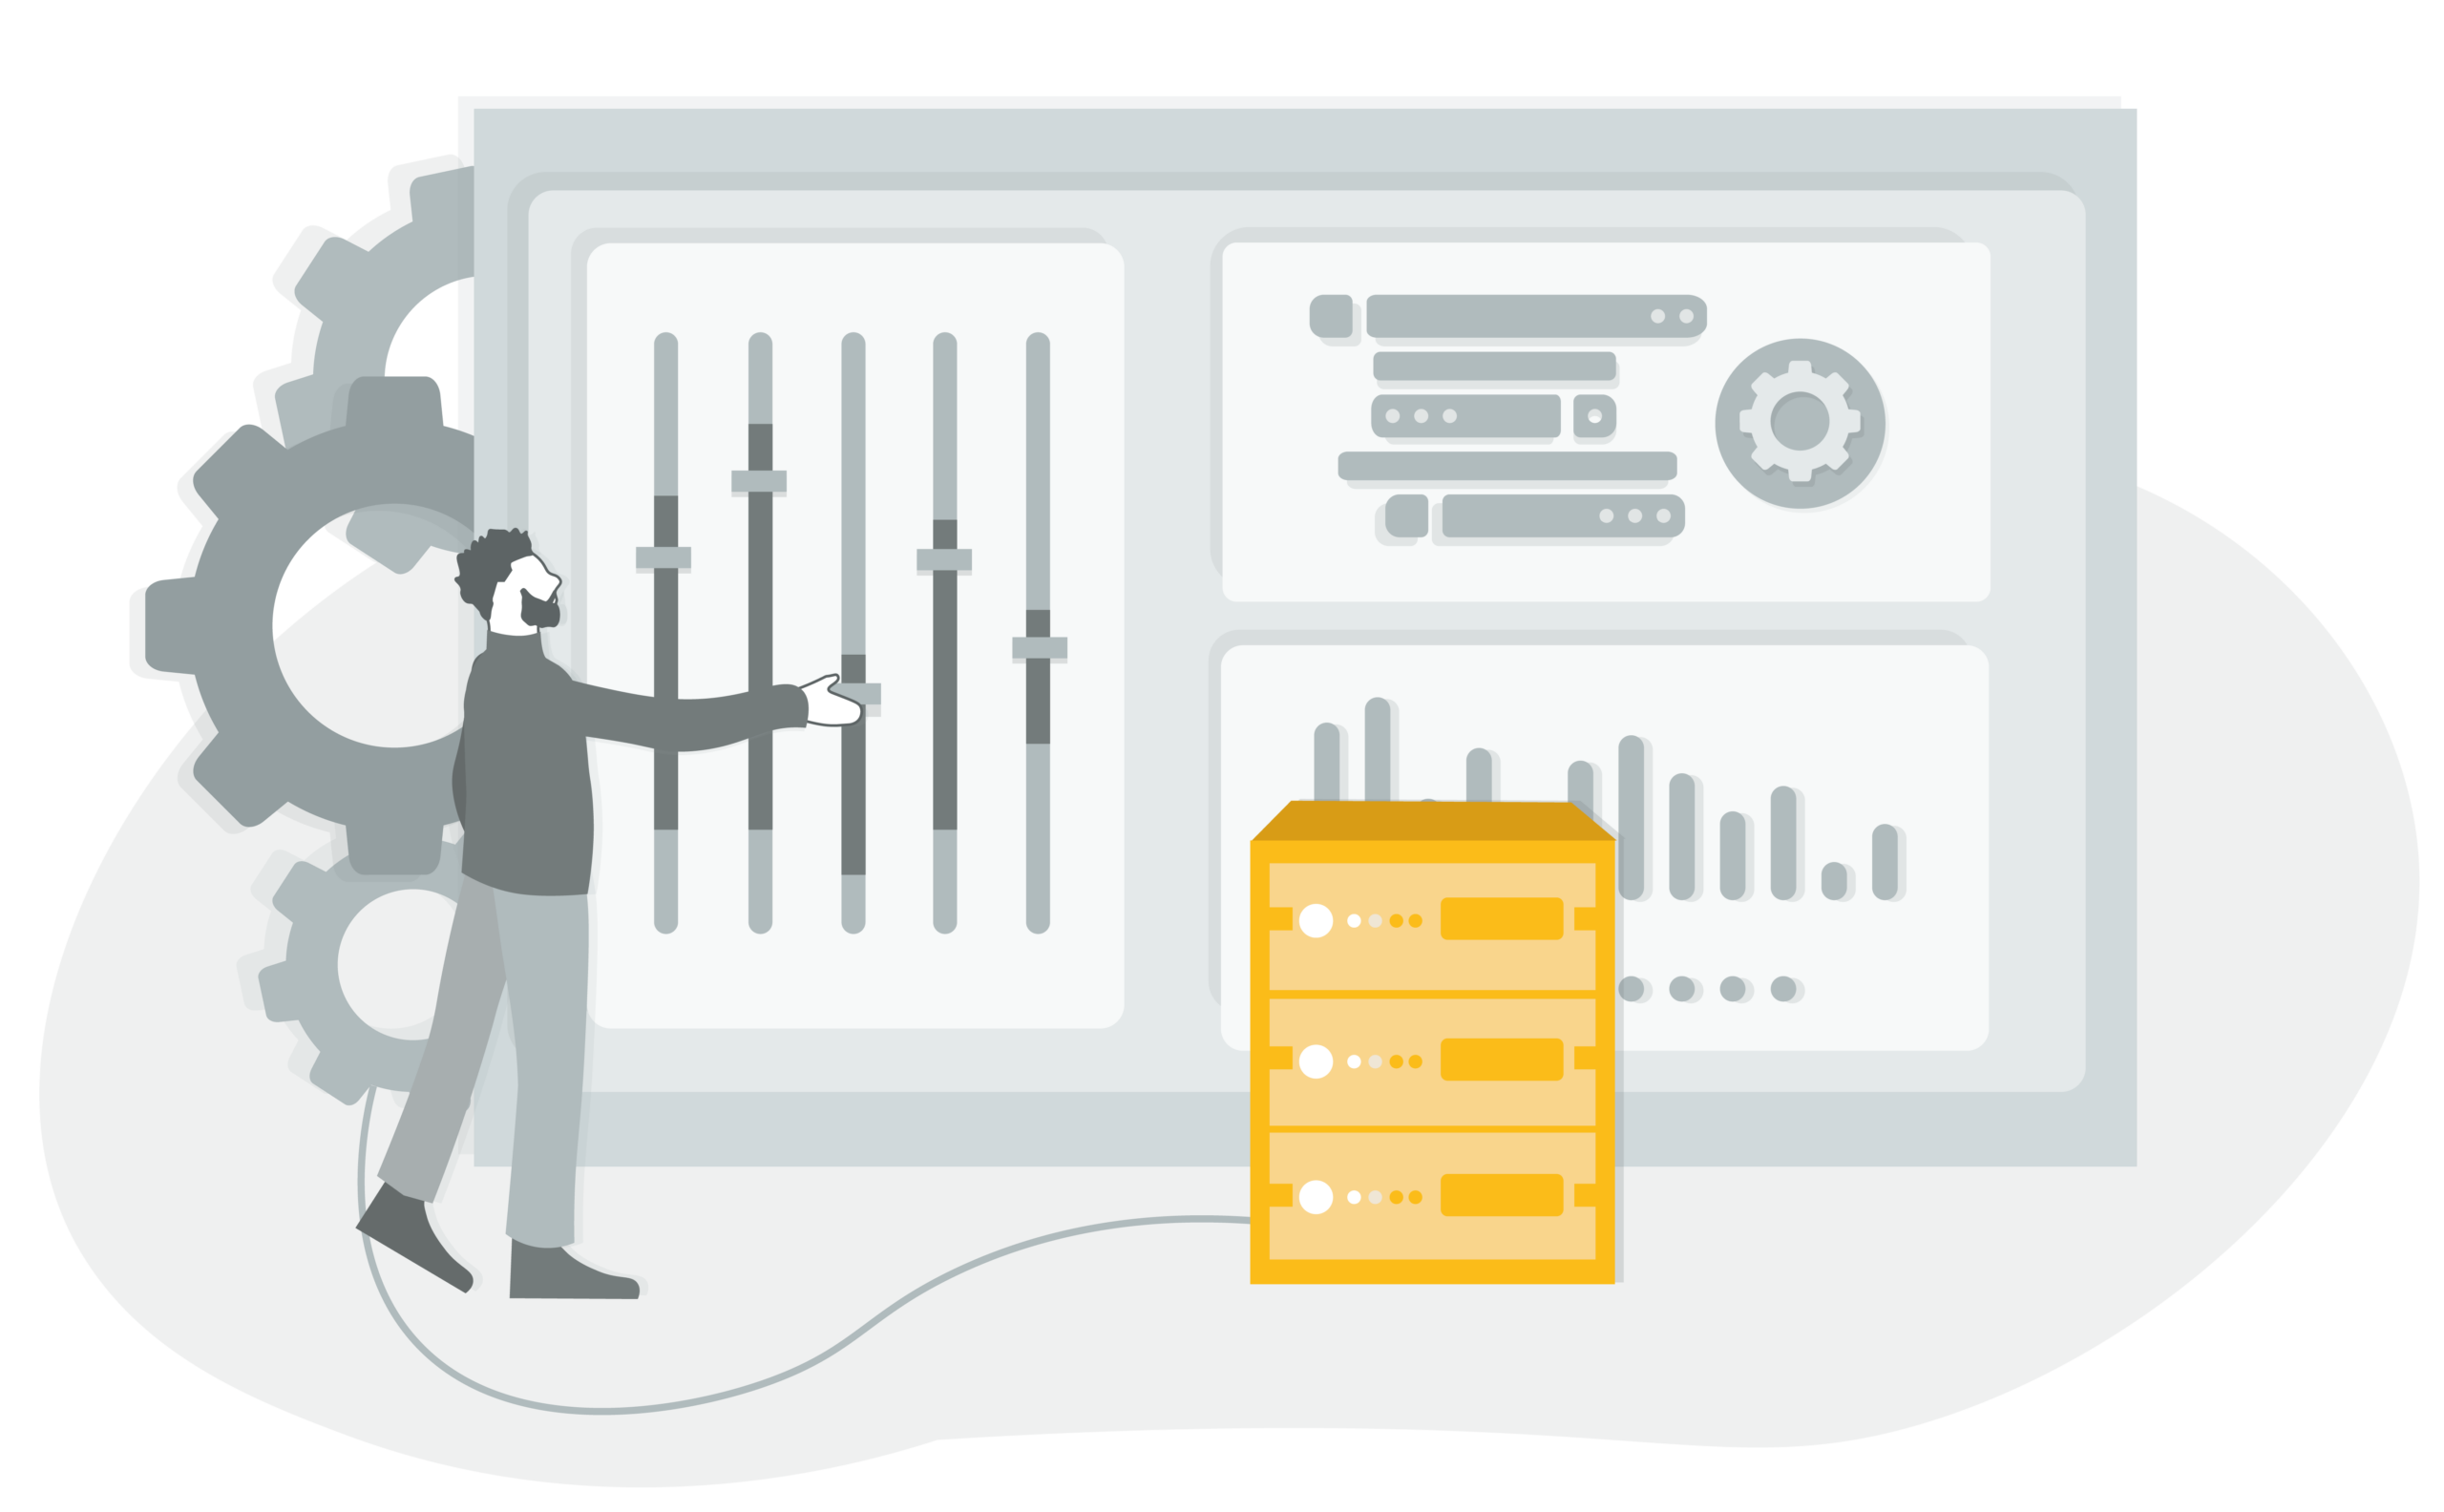 Data processing and analysis illustration